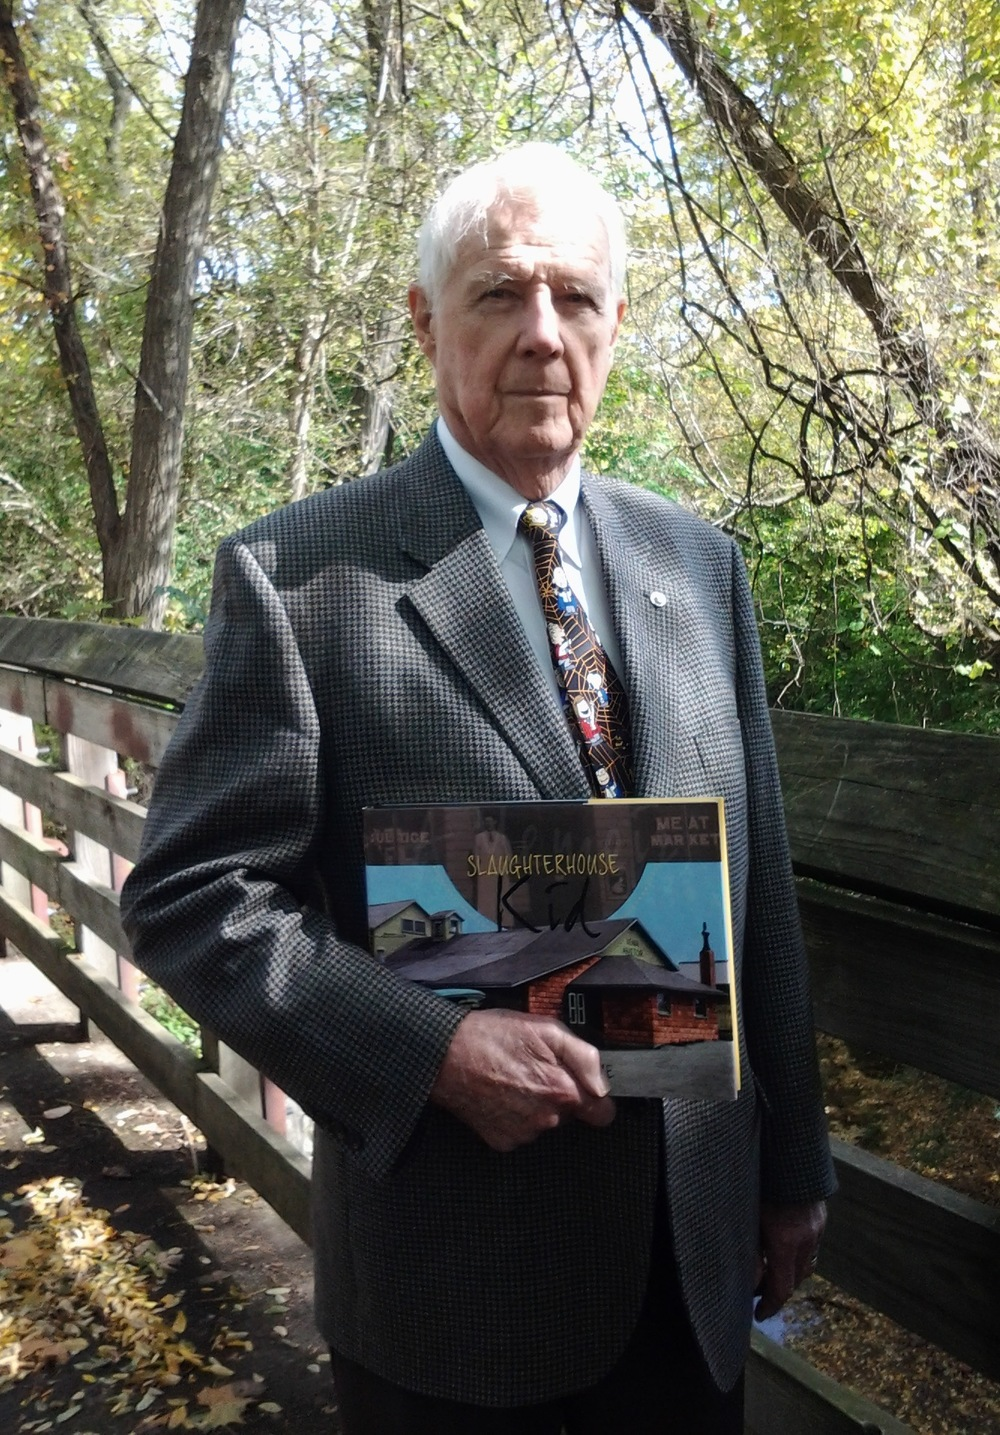 Wendell Cultice with his memoir, Slaughterhouse Kid, a custom book published by Orange Frazer Press